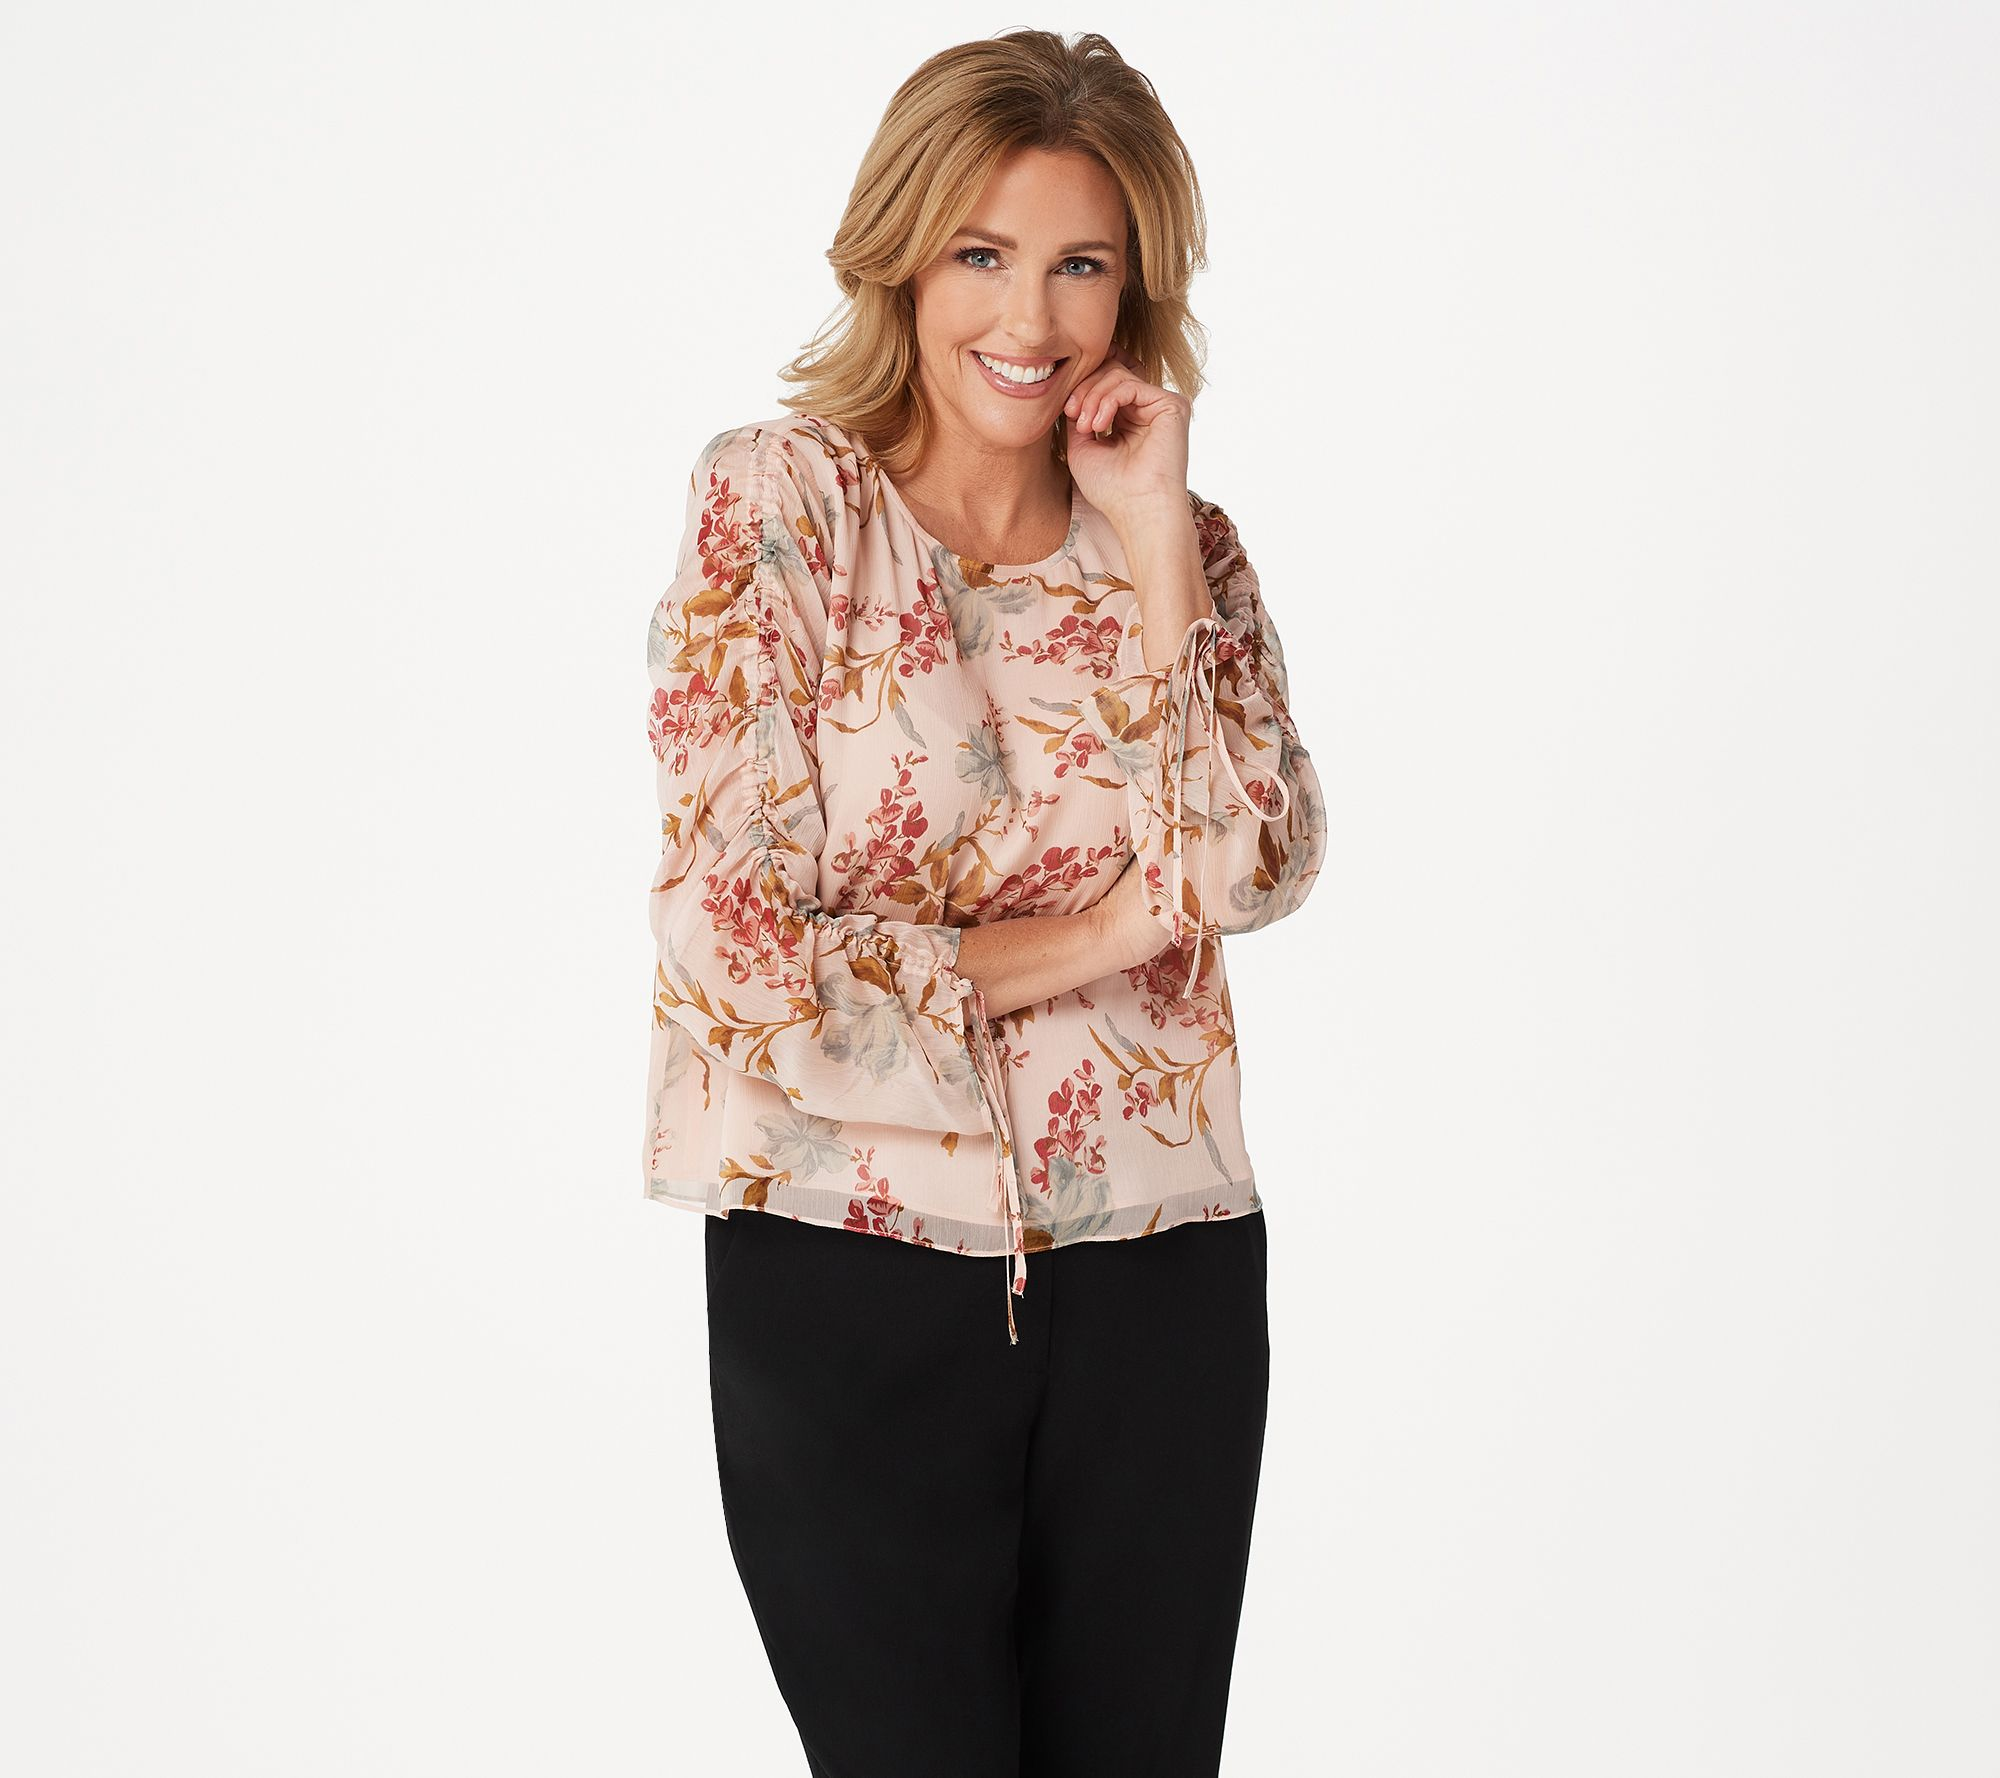 e67f5a2af955 Vince Camuto Drawstring Sleeve Wildflower Blouse - Page 1 — QVC.com